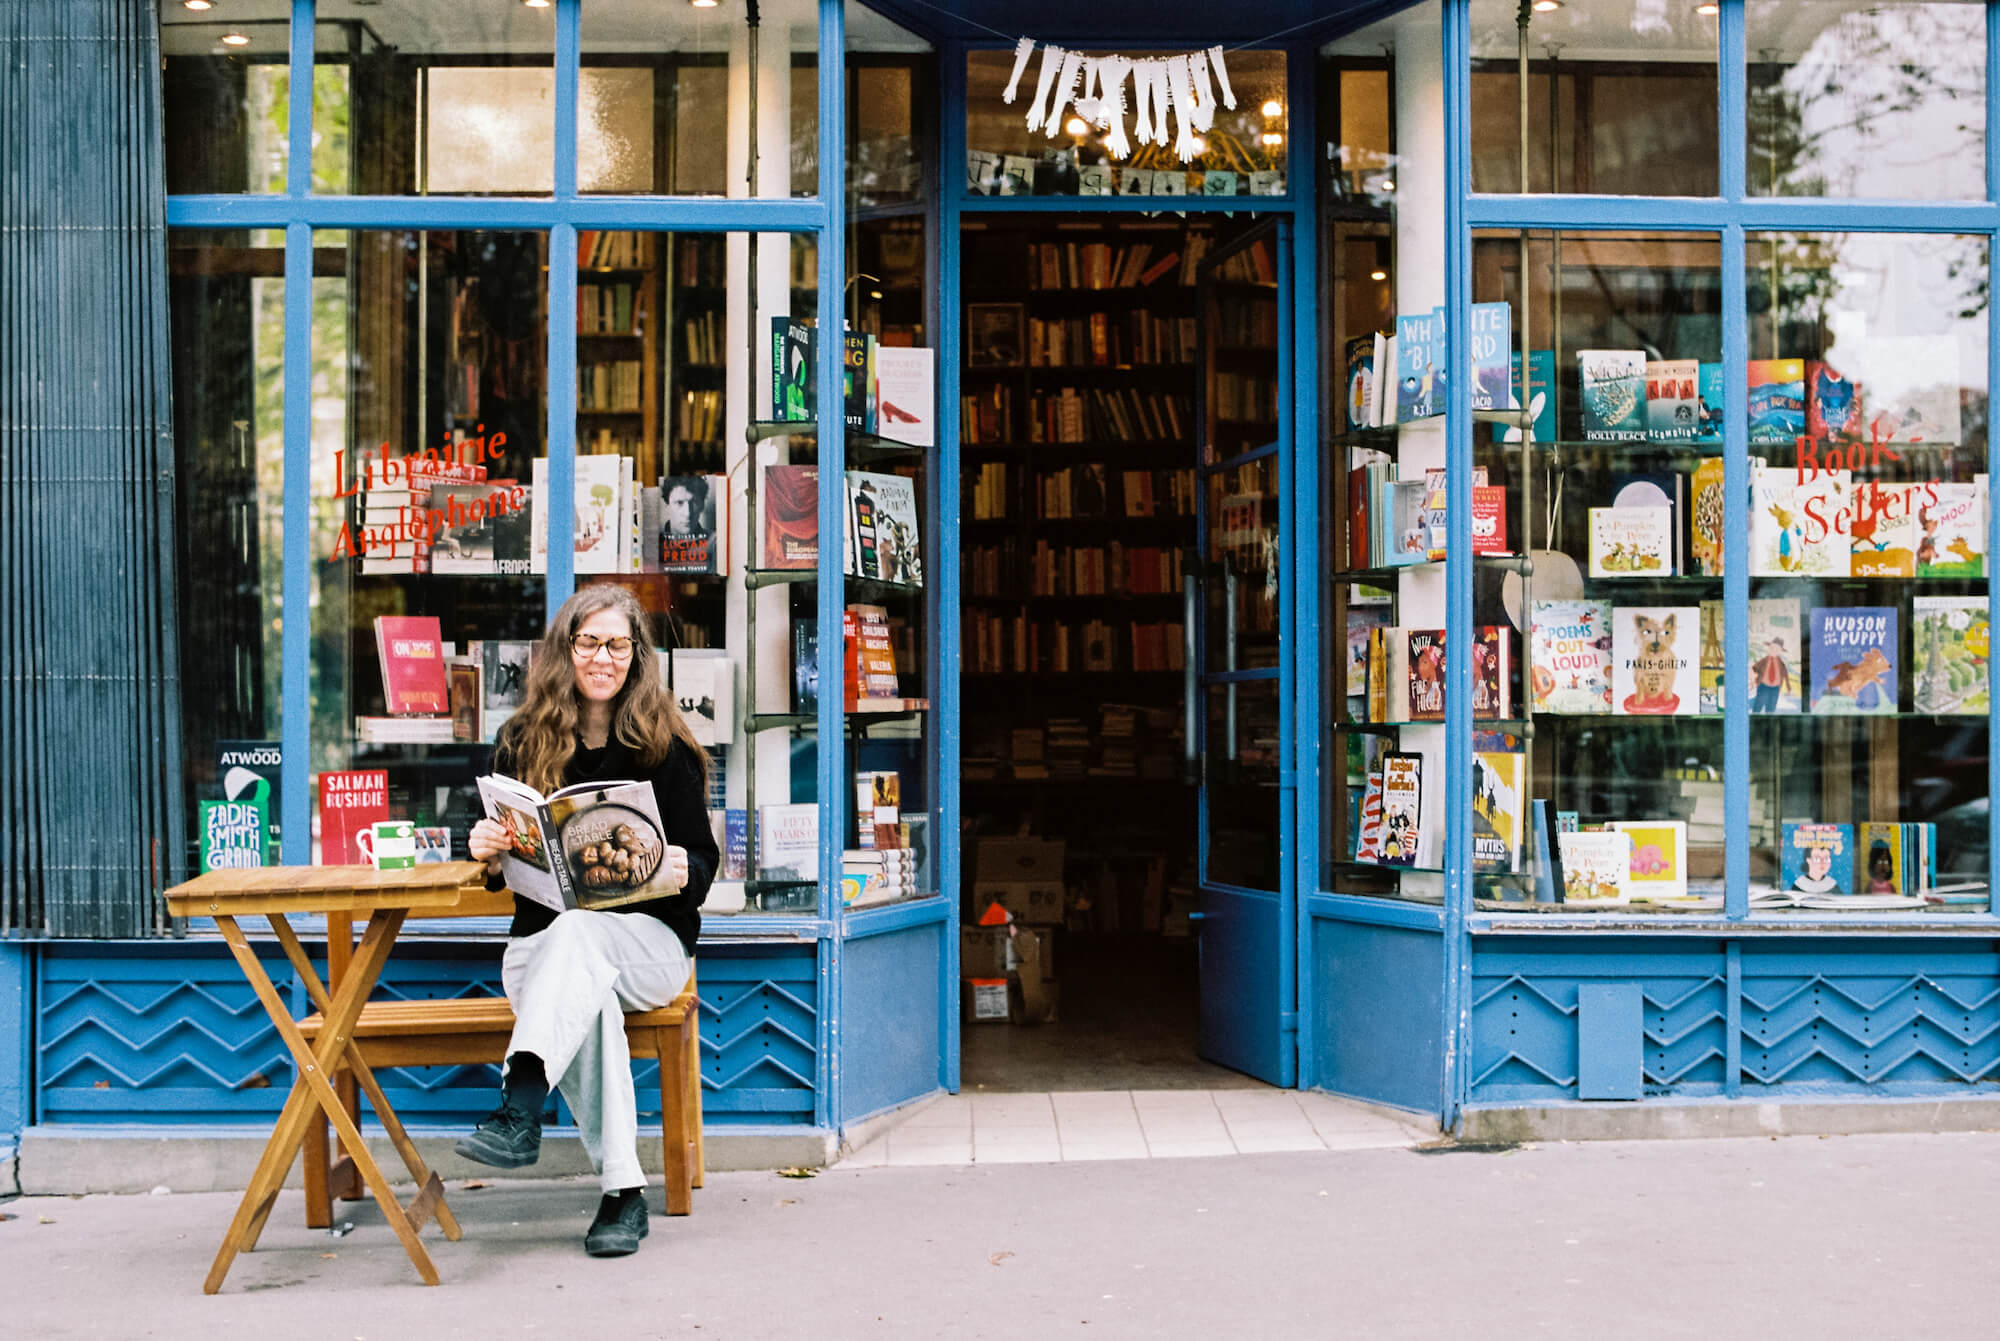 Penelope Fletcher, bookseller at the Red Wheelbarrow, sits outside the bright, blue and beloved bookstore with a magazine in her hands and smile on her face.